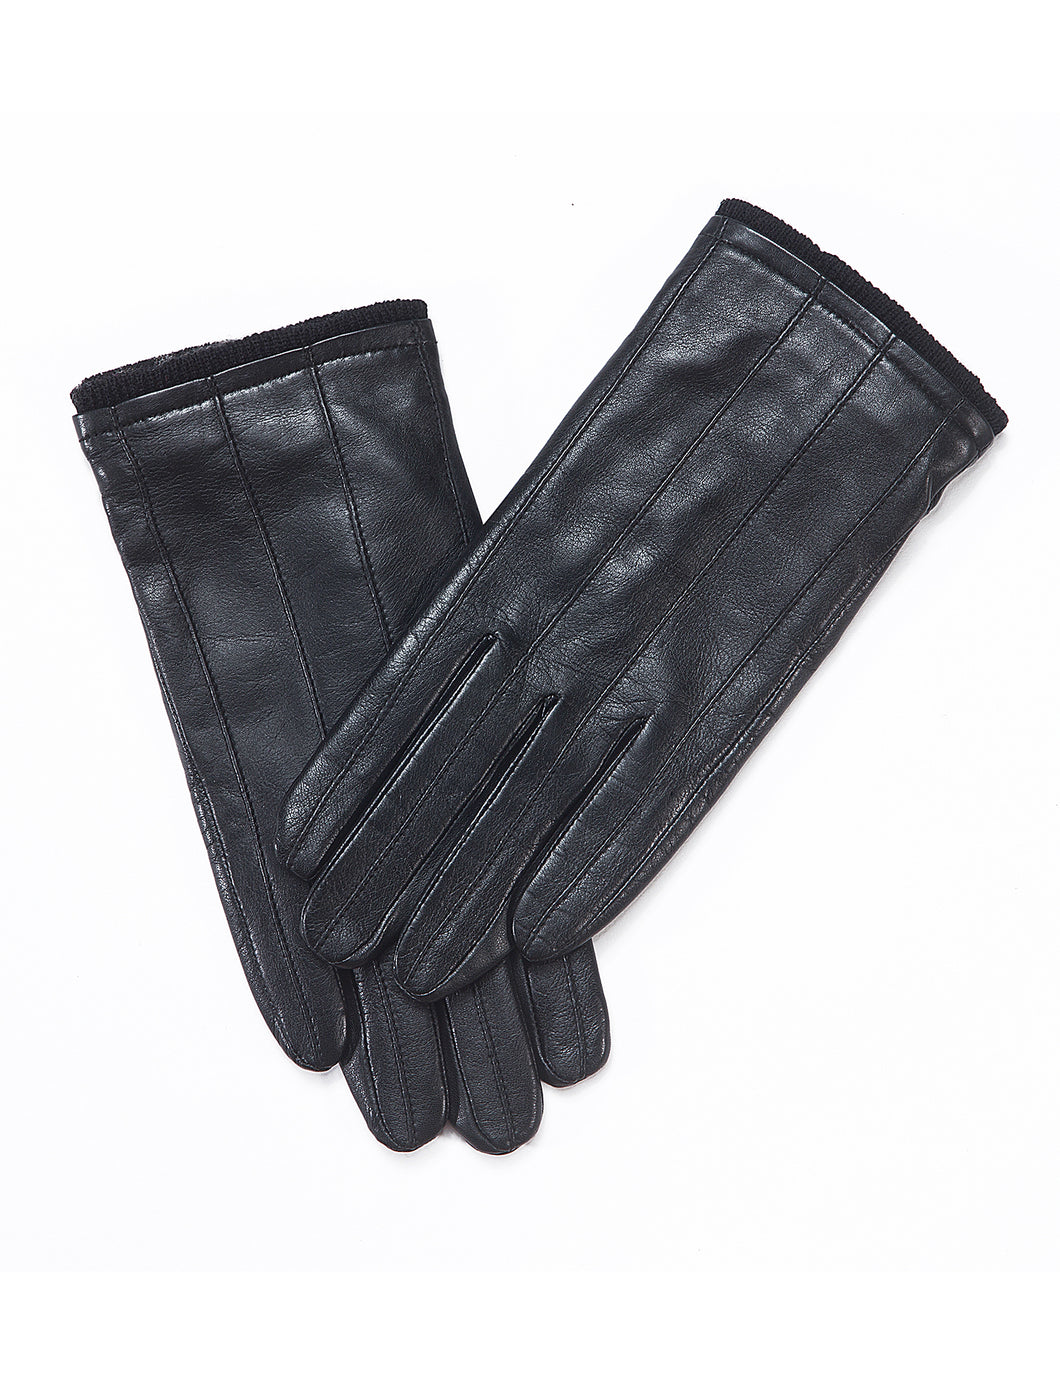 YISEVEN Men's Genuine Nappa Leather Lined Winter Gloves